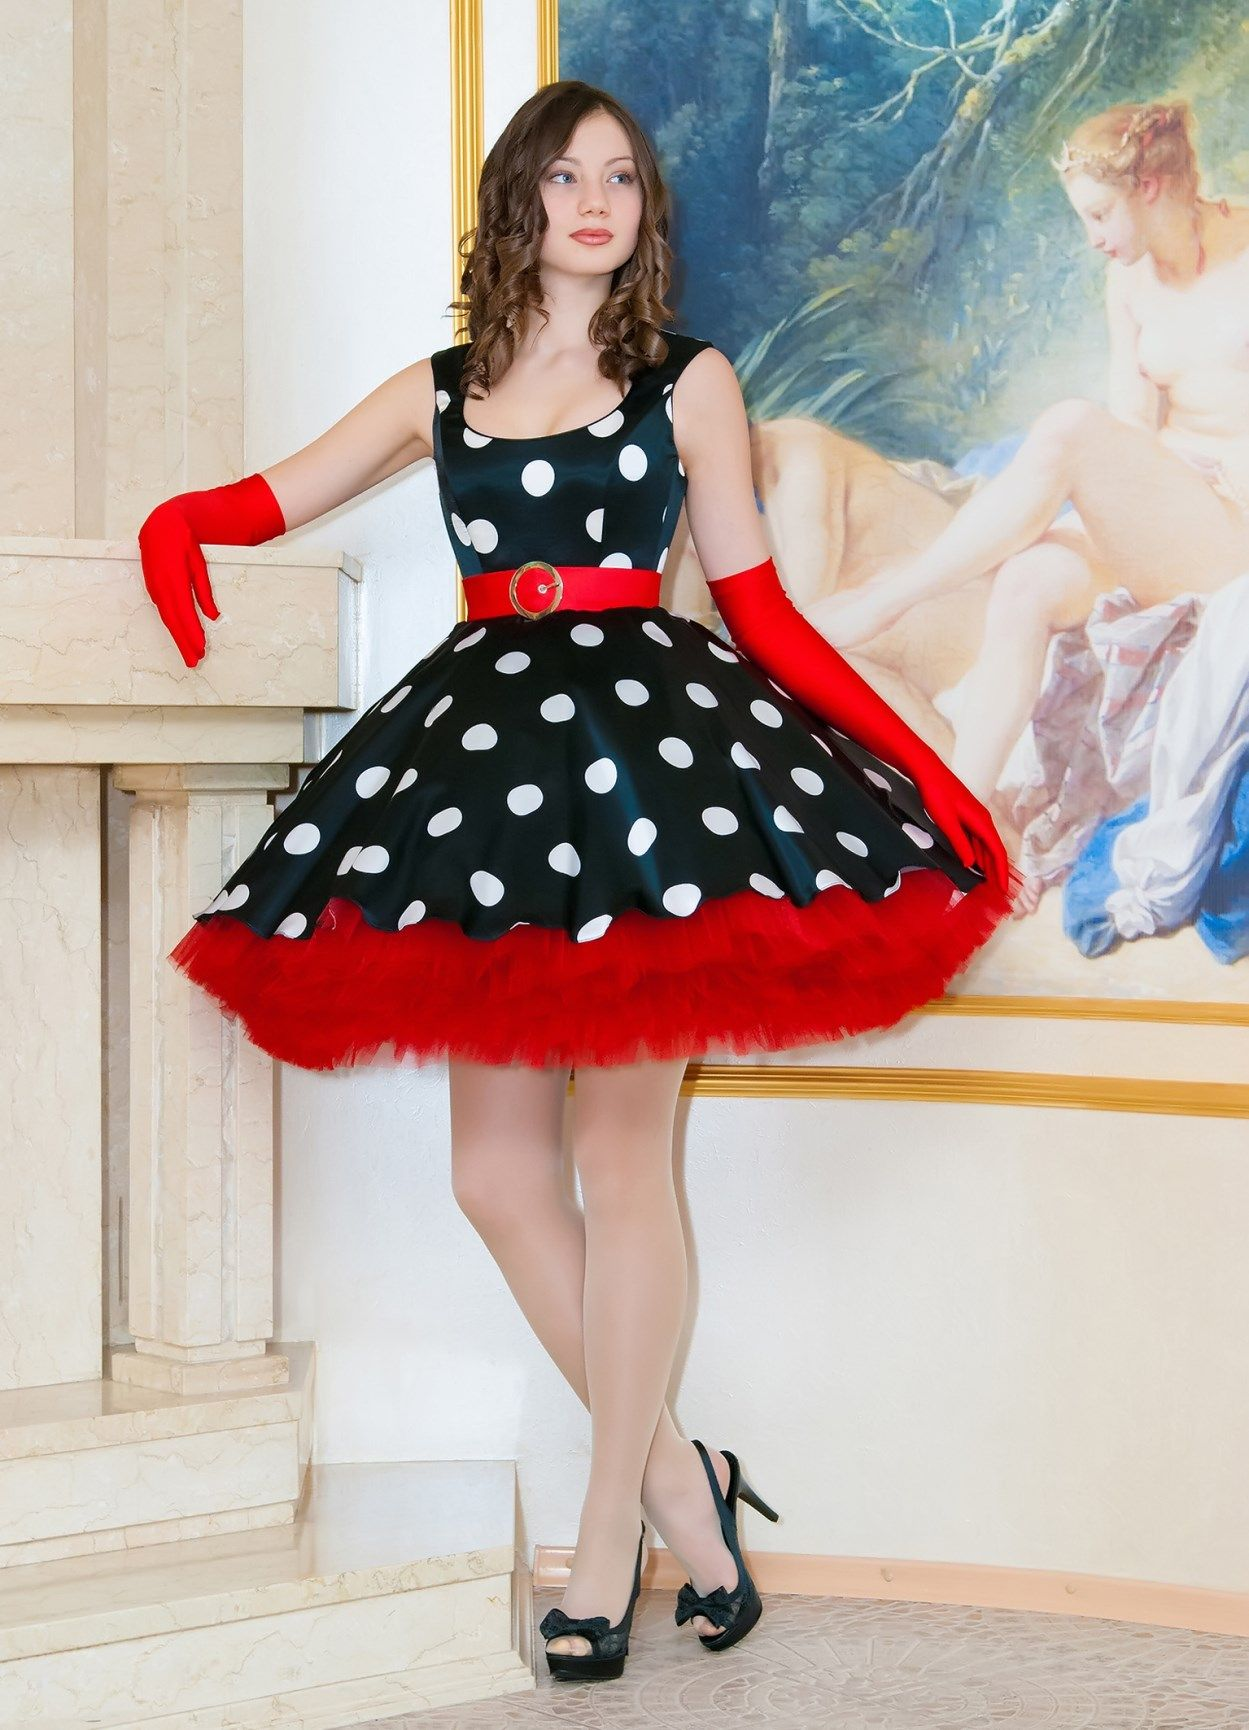 dress for a party in the New look 50s style www.retro ...